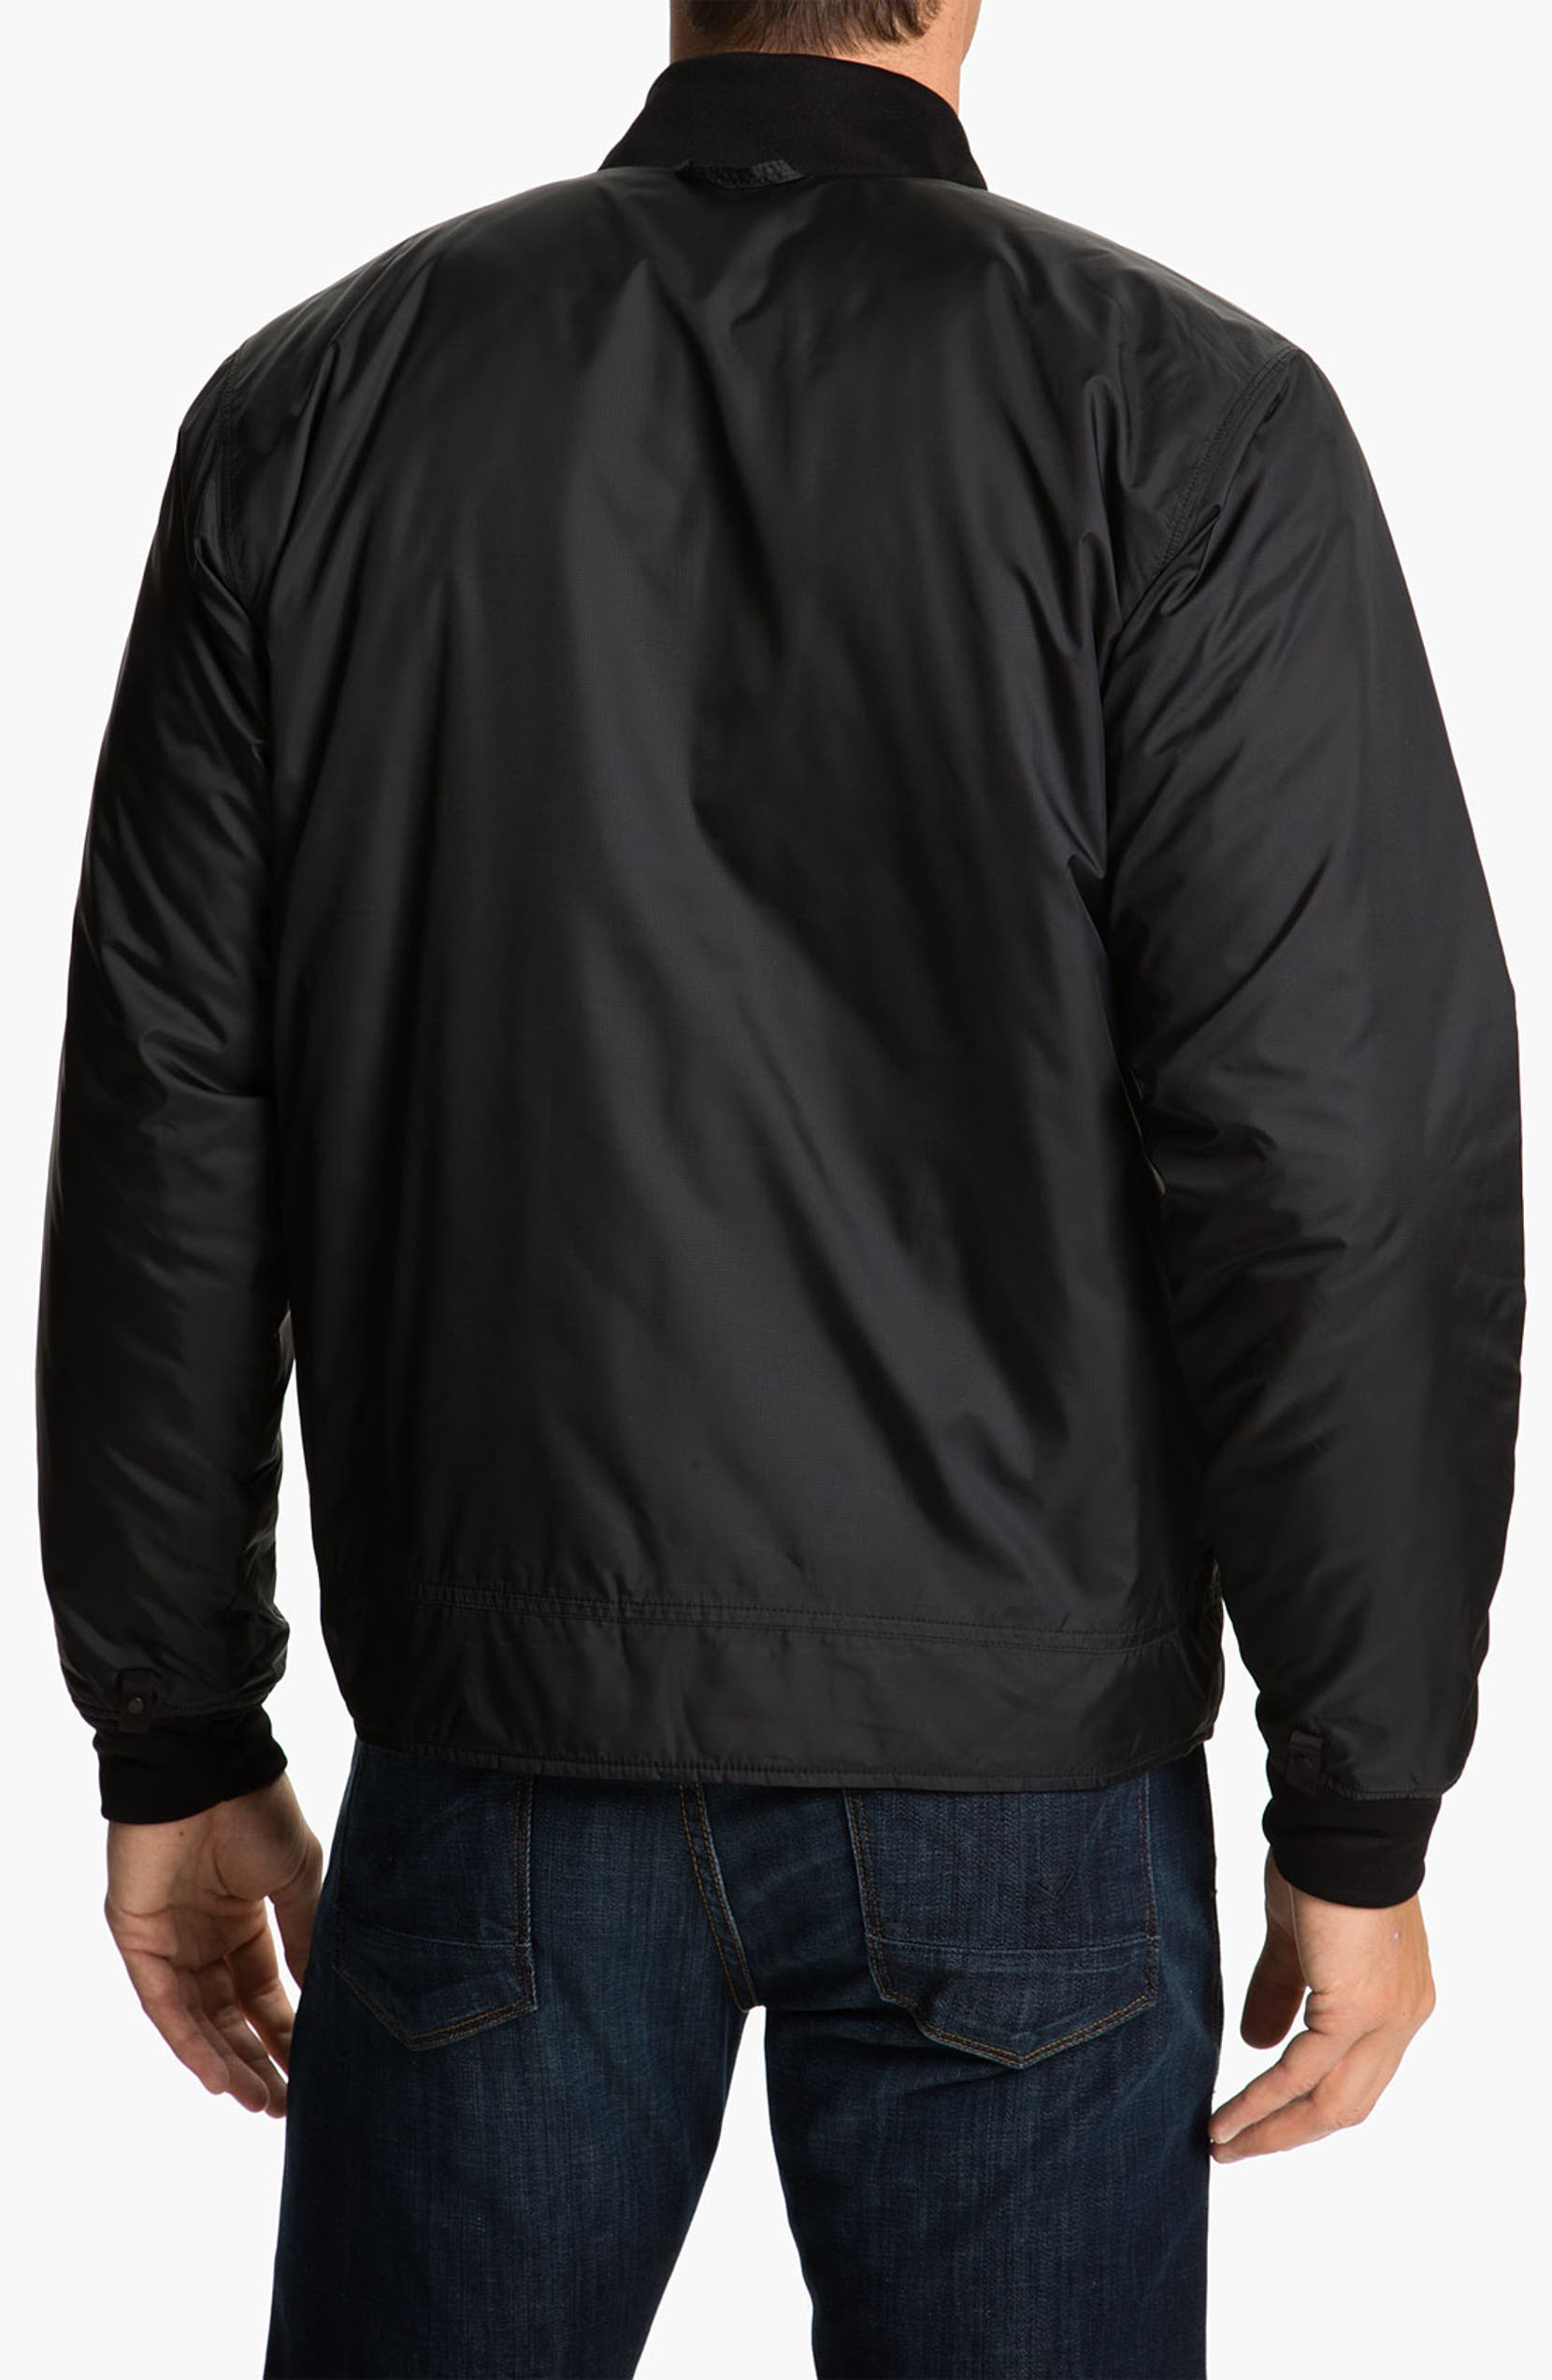 198a4f177 The North Face 'Houser' TriClimate® HyVent® Waterproof 3-in-1 Jacket ...